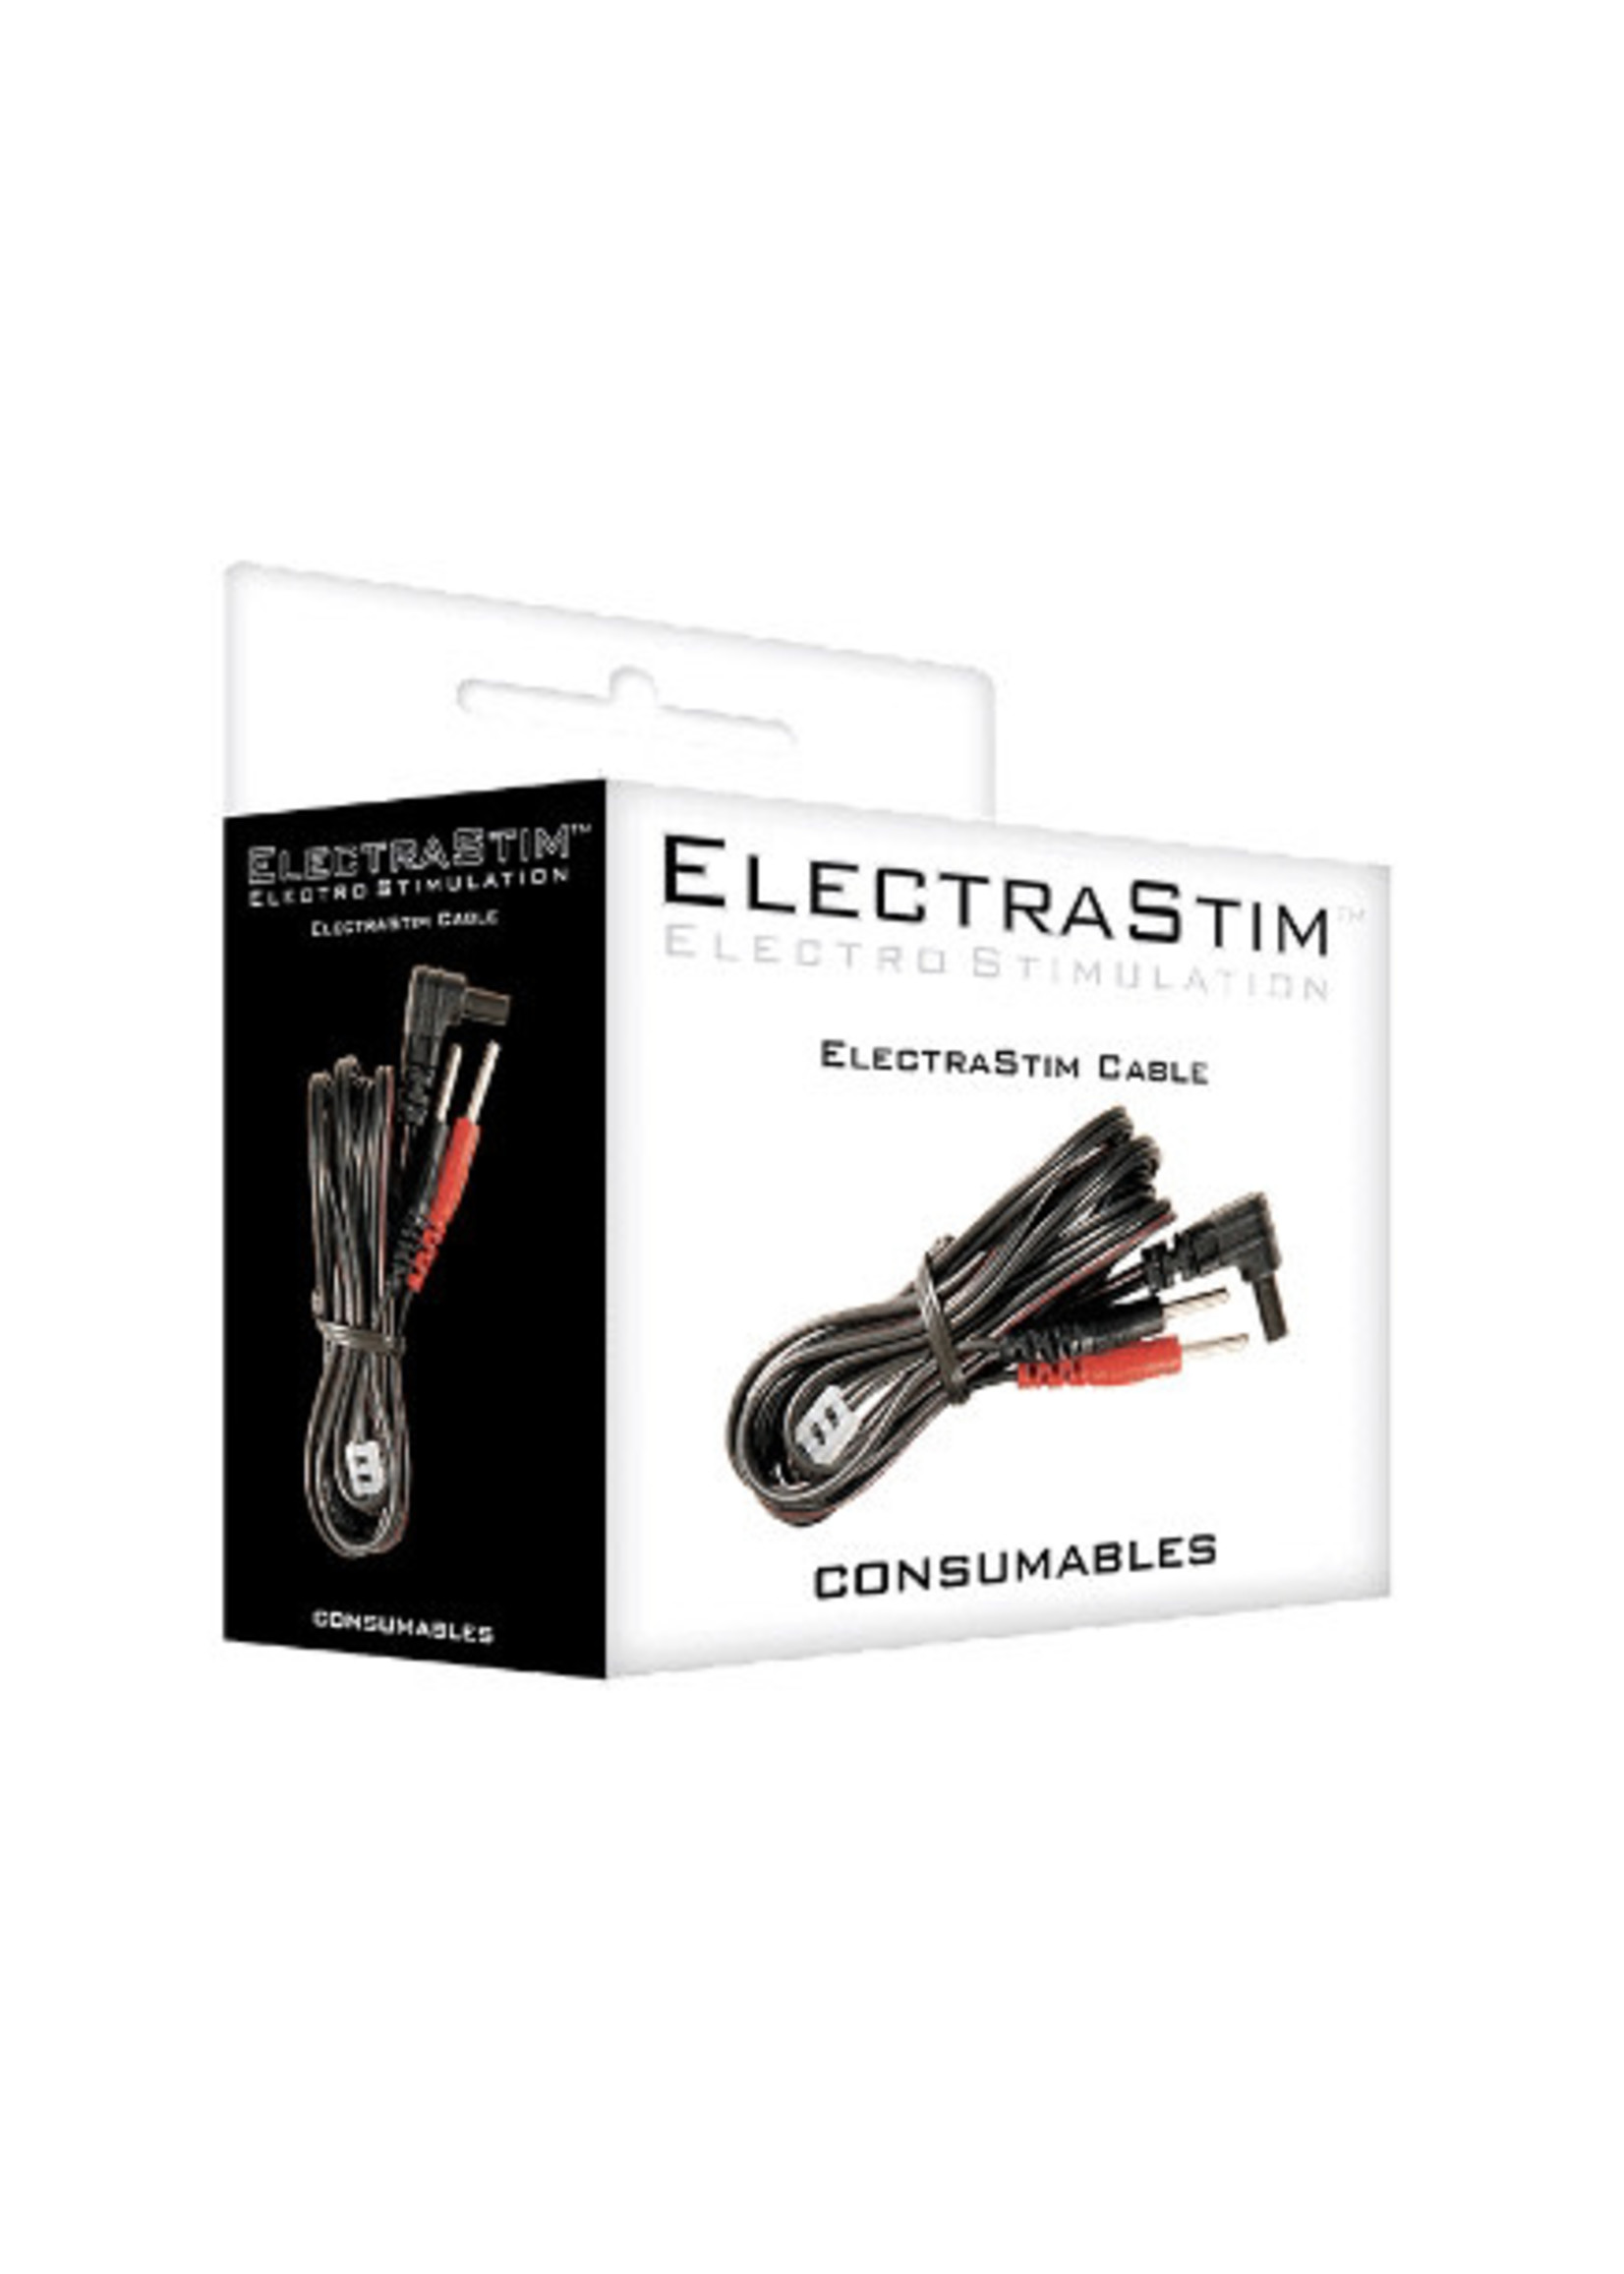 ElectraStim Electrastim Spare/Replacement Cable